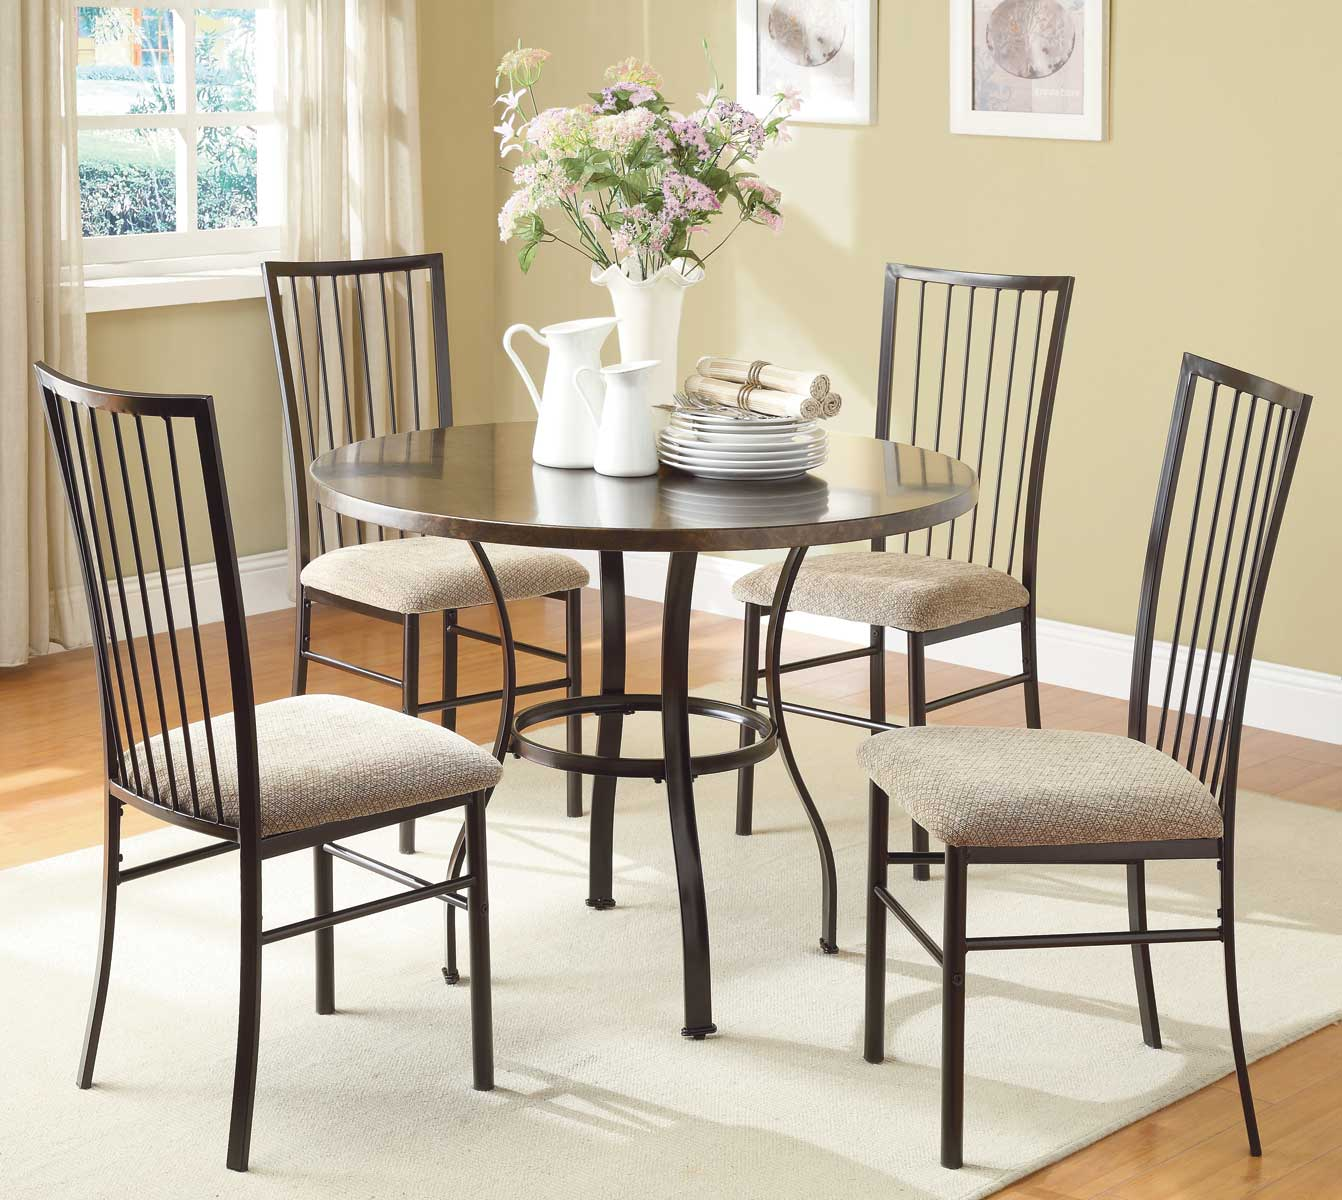 Homelegance Carlson 5-Piece Pack Dinette Set - Coffee